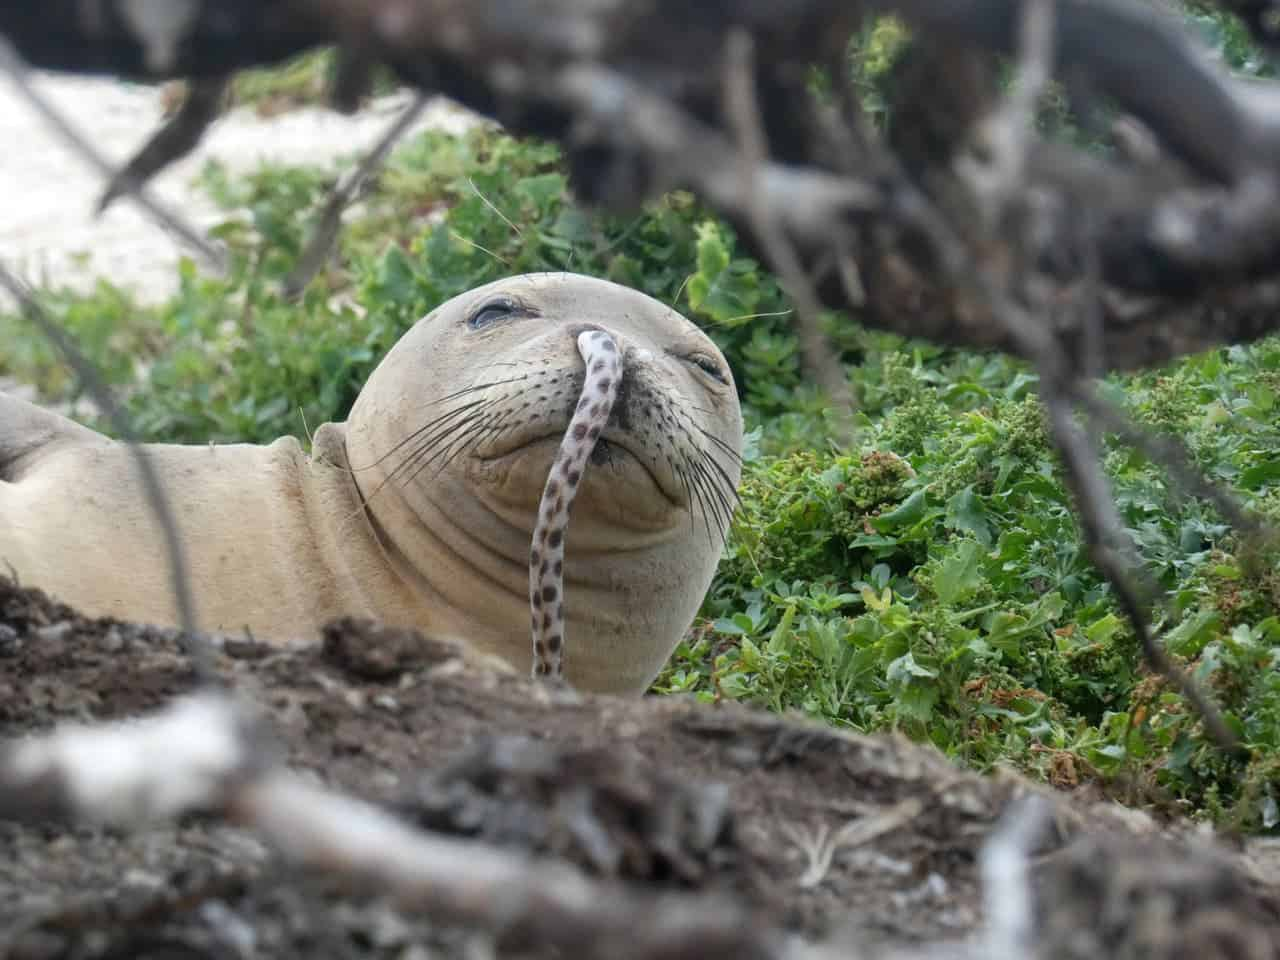 Endangered monk seal spotted with eel stuck up its nose